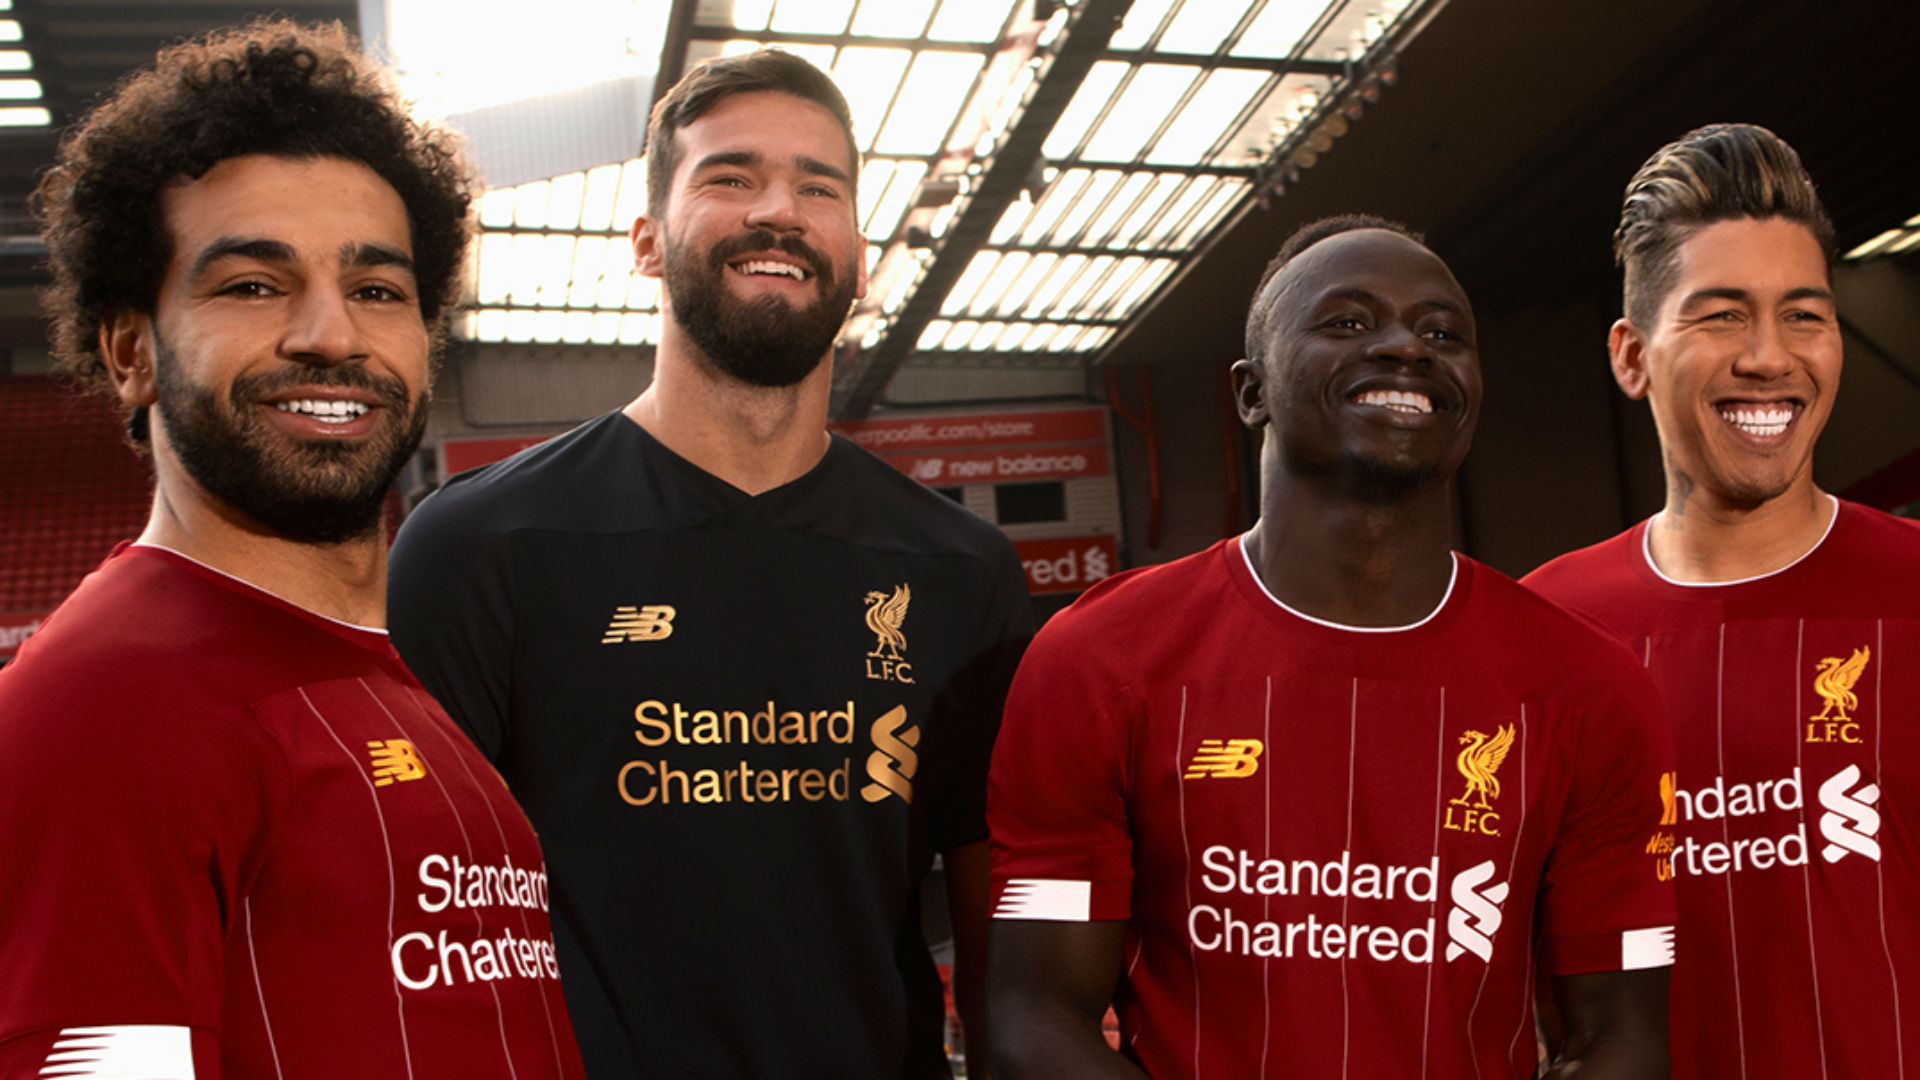 Liverpool new kit: Former manager Bob Paisley honoured in retro-style strip